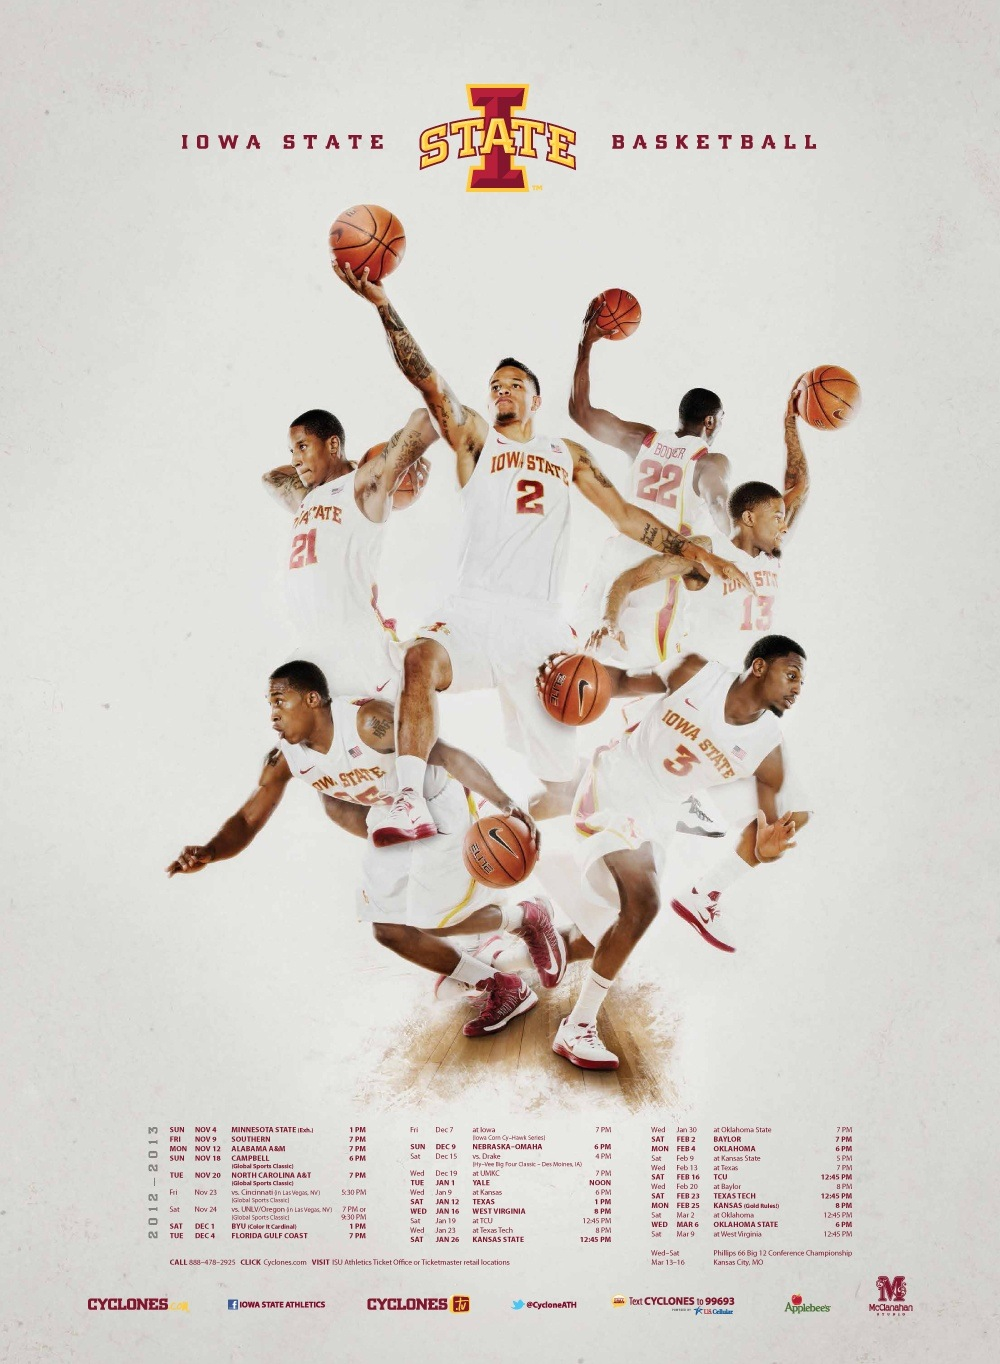 Football-season-is-over-Now-time-to-concentrate-on-Cyclone-basketball-in-wallpaper-wp4004849-1